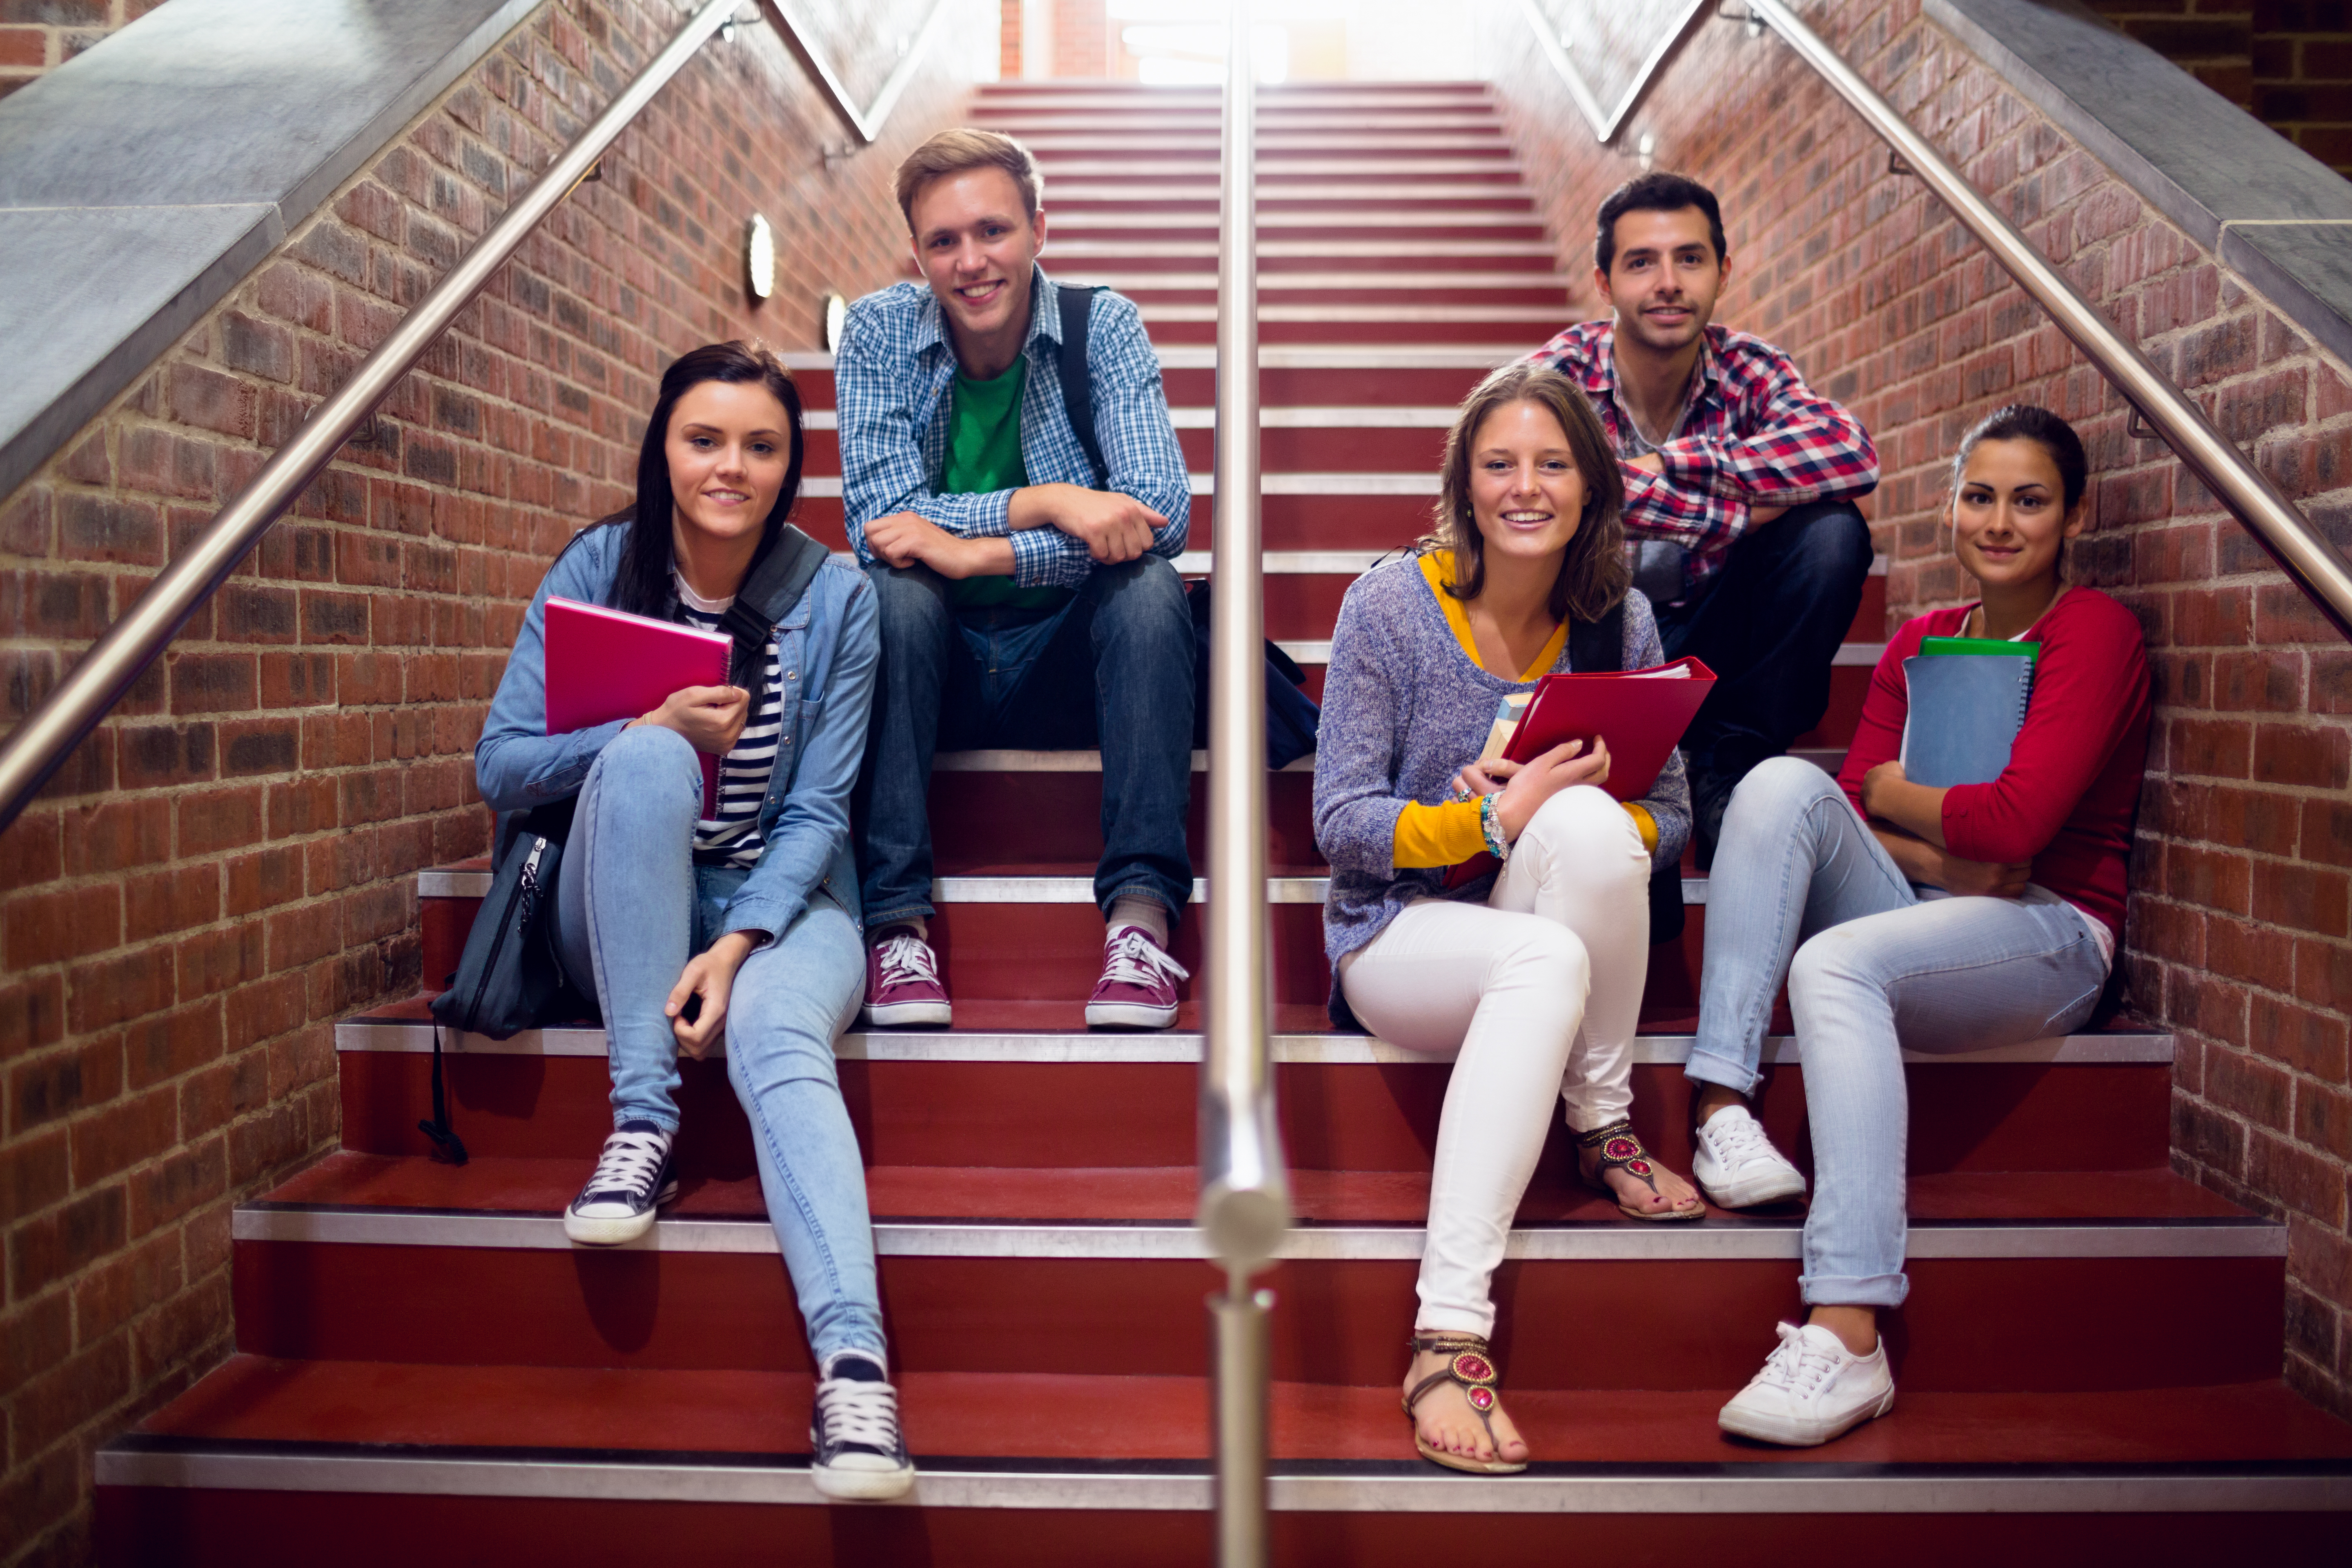 Group portrait of young college students sitting on stairs in the coll